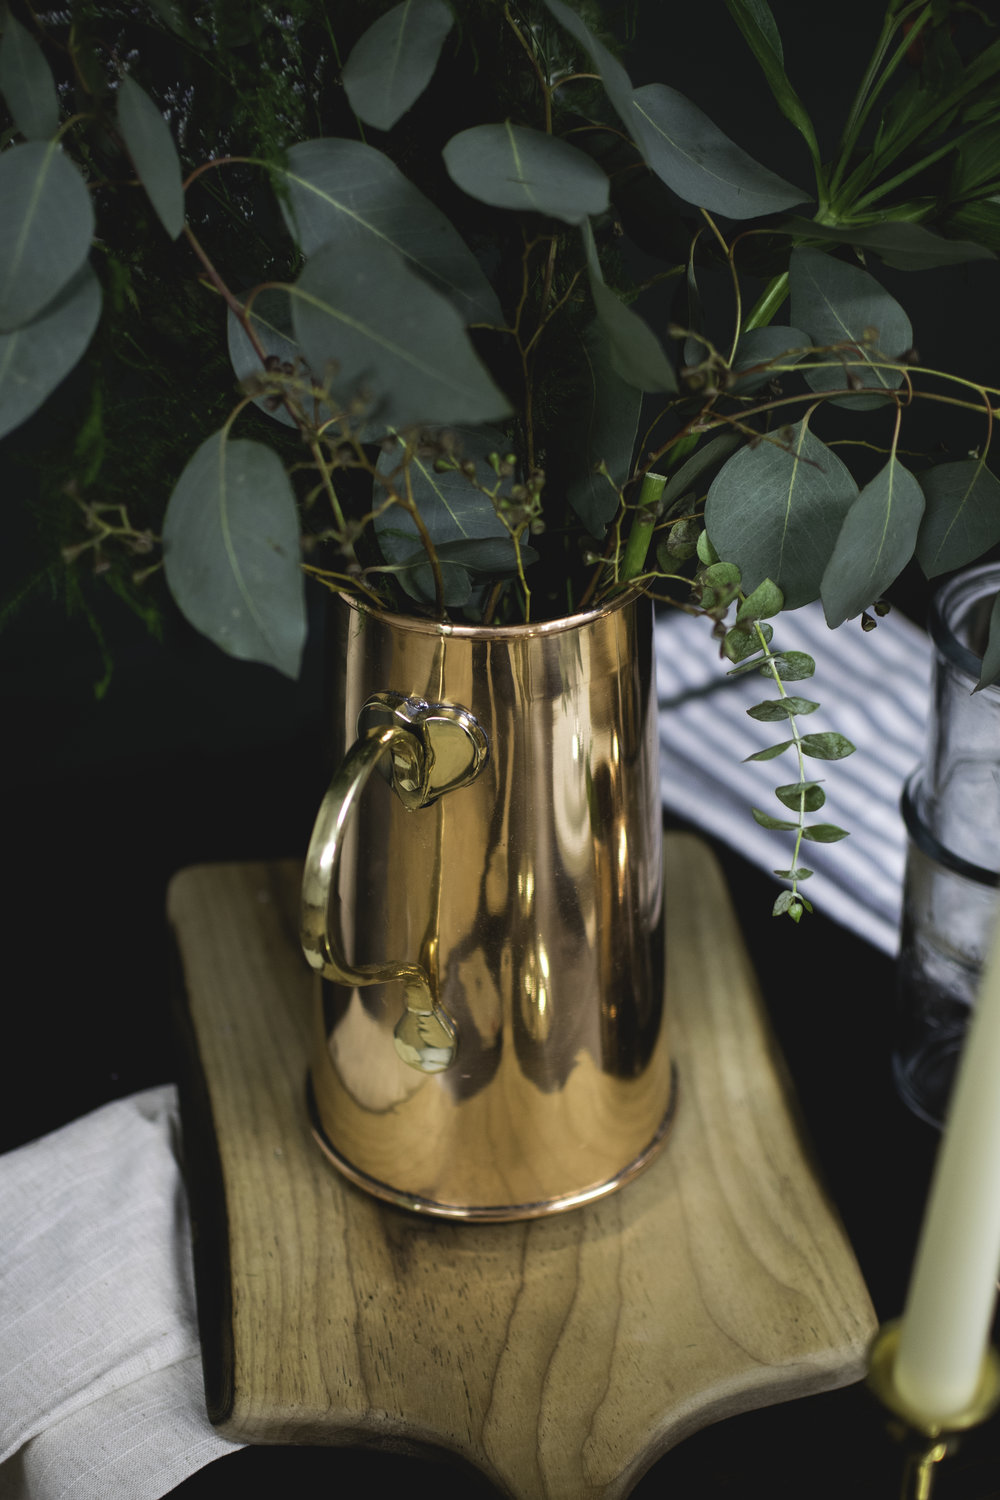 Copper Water Jug - $54.00